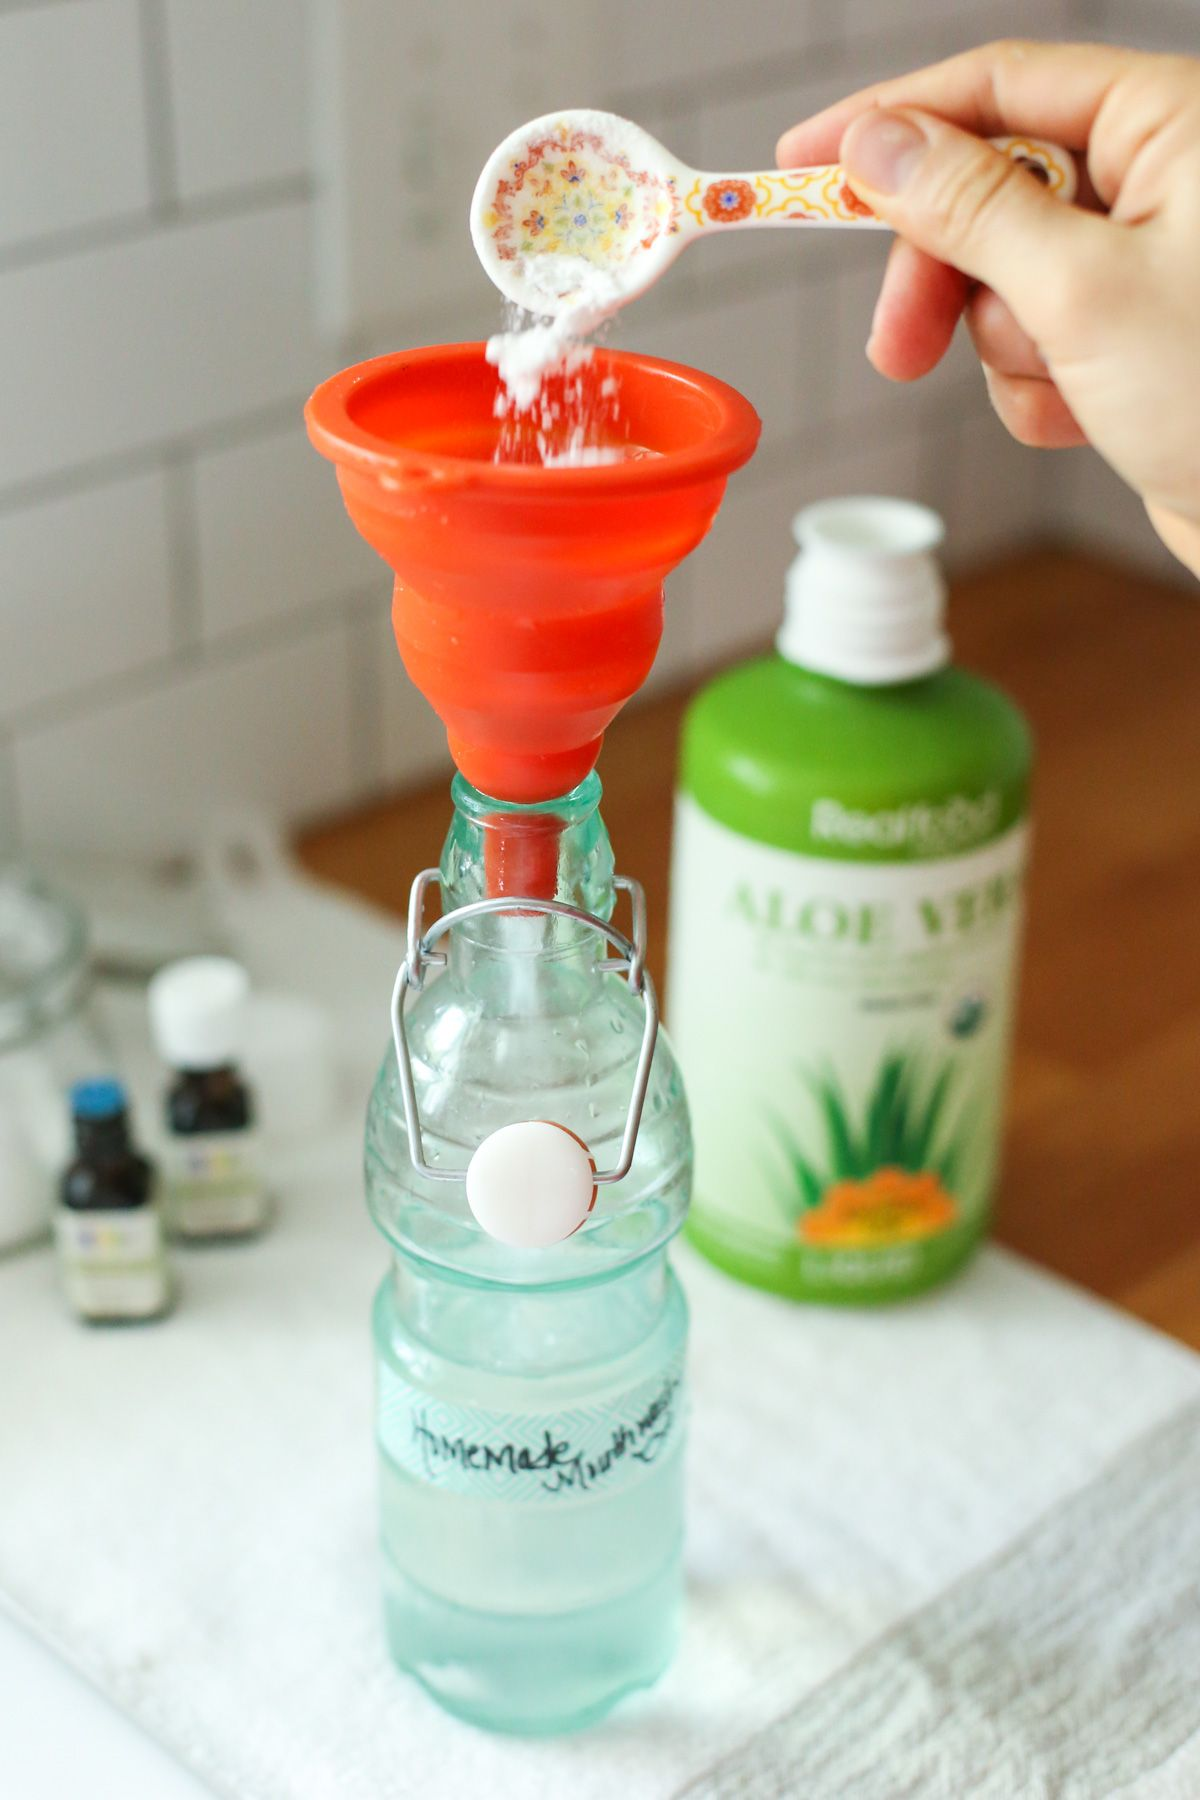 Easy homemade mouthwash live simply homemade mouthwash